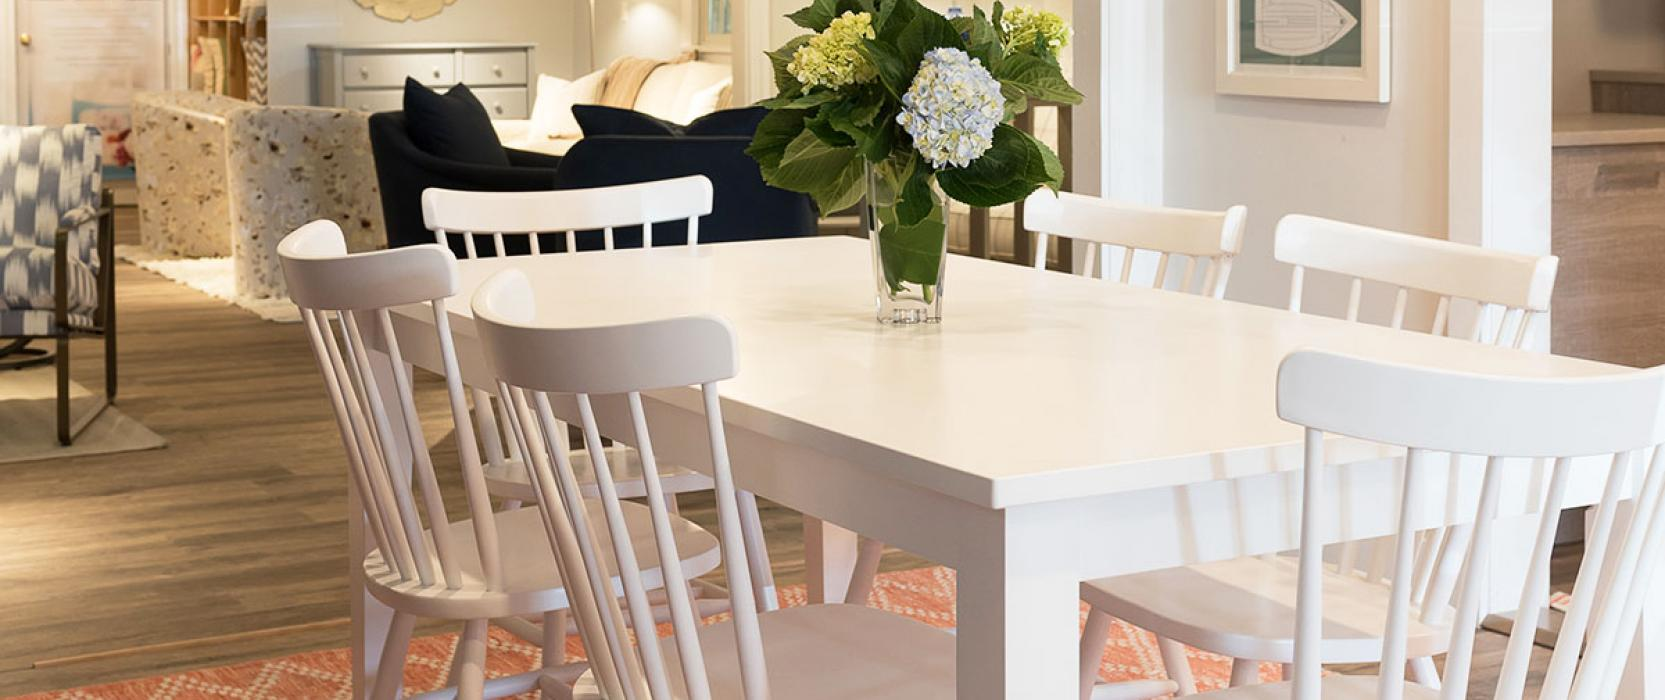 Dining room set up in Marine Home Center showroom